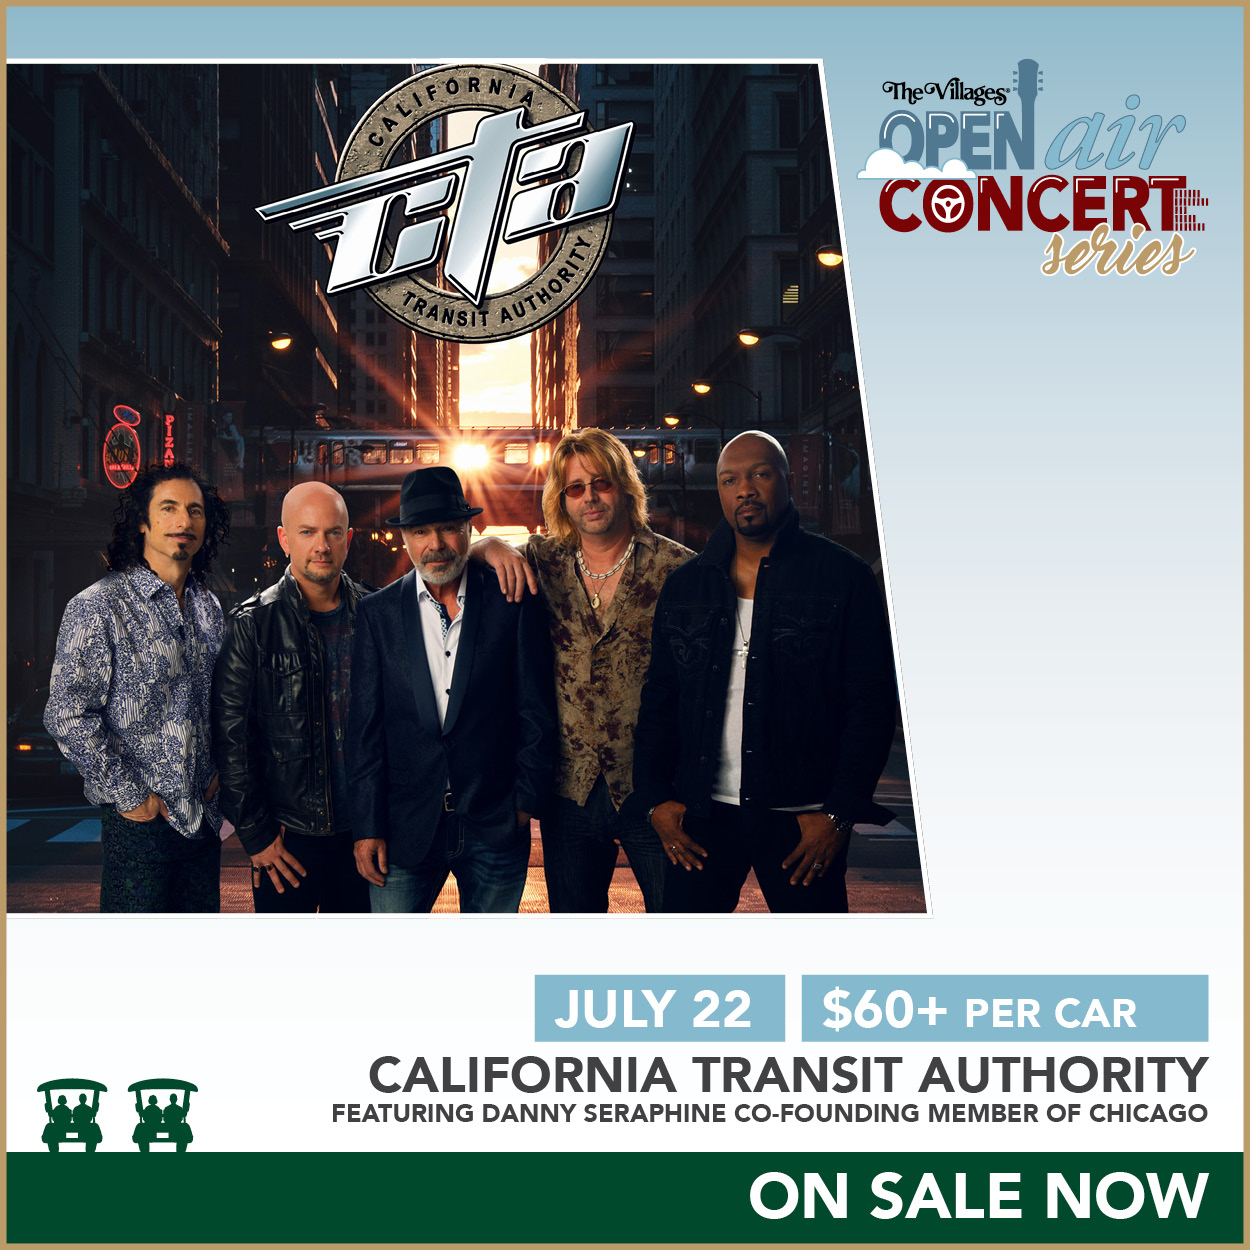 Open Air Concert Series – California Transit Authority feat. Danny Seraphine